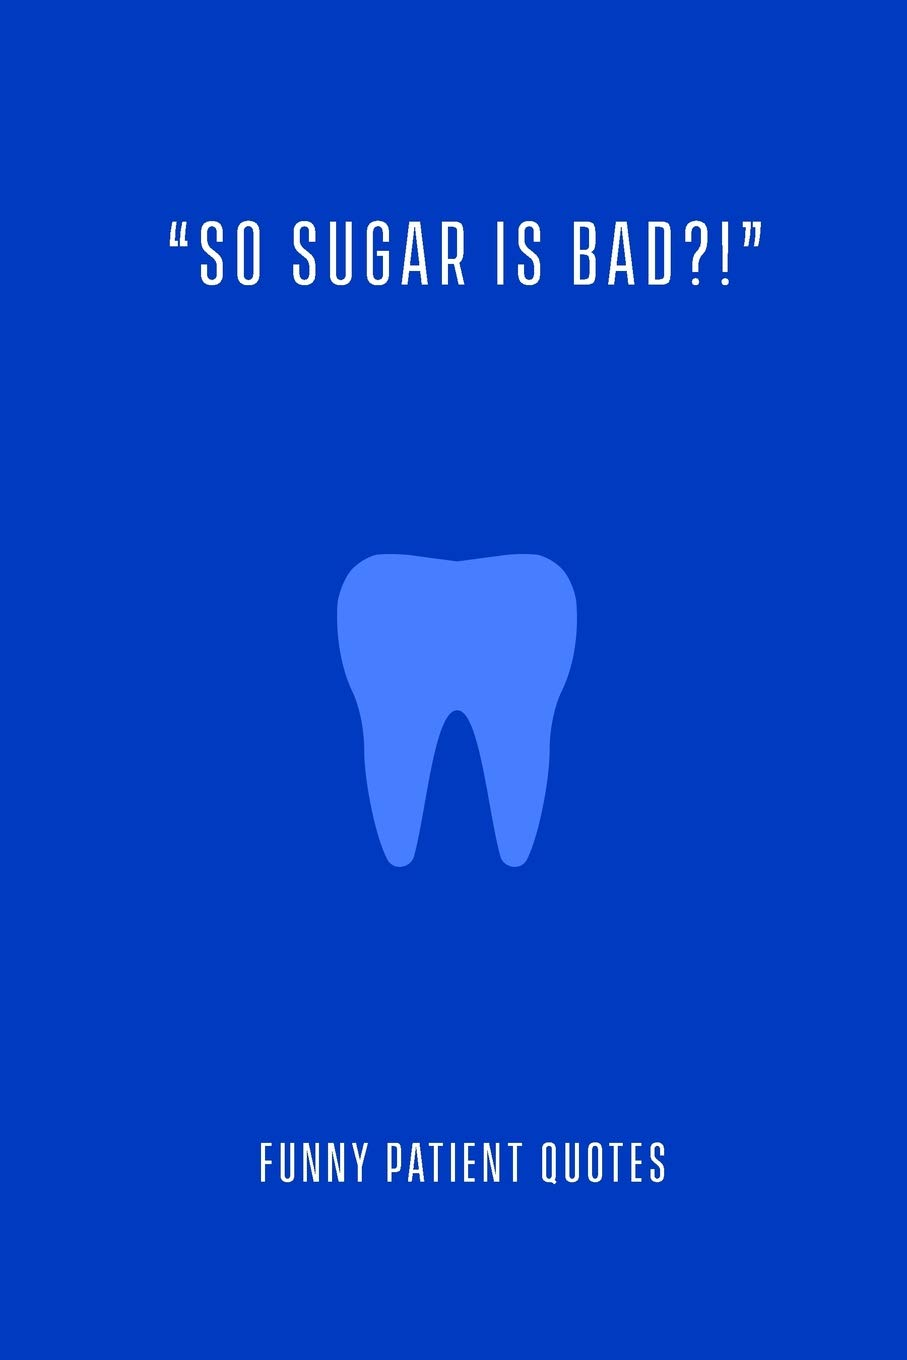 Funny Patient Quotes: So Sugar Is Bad?! The Funny Things ...